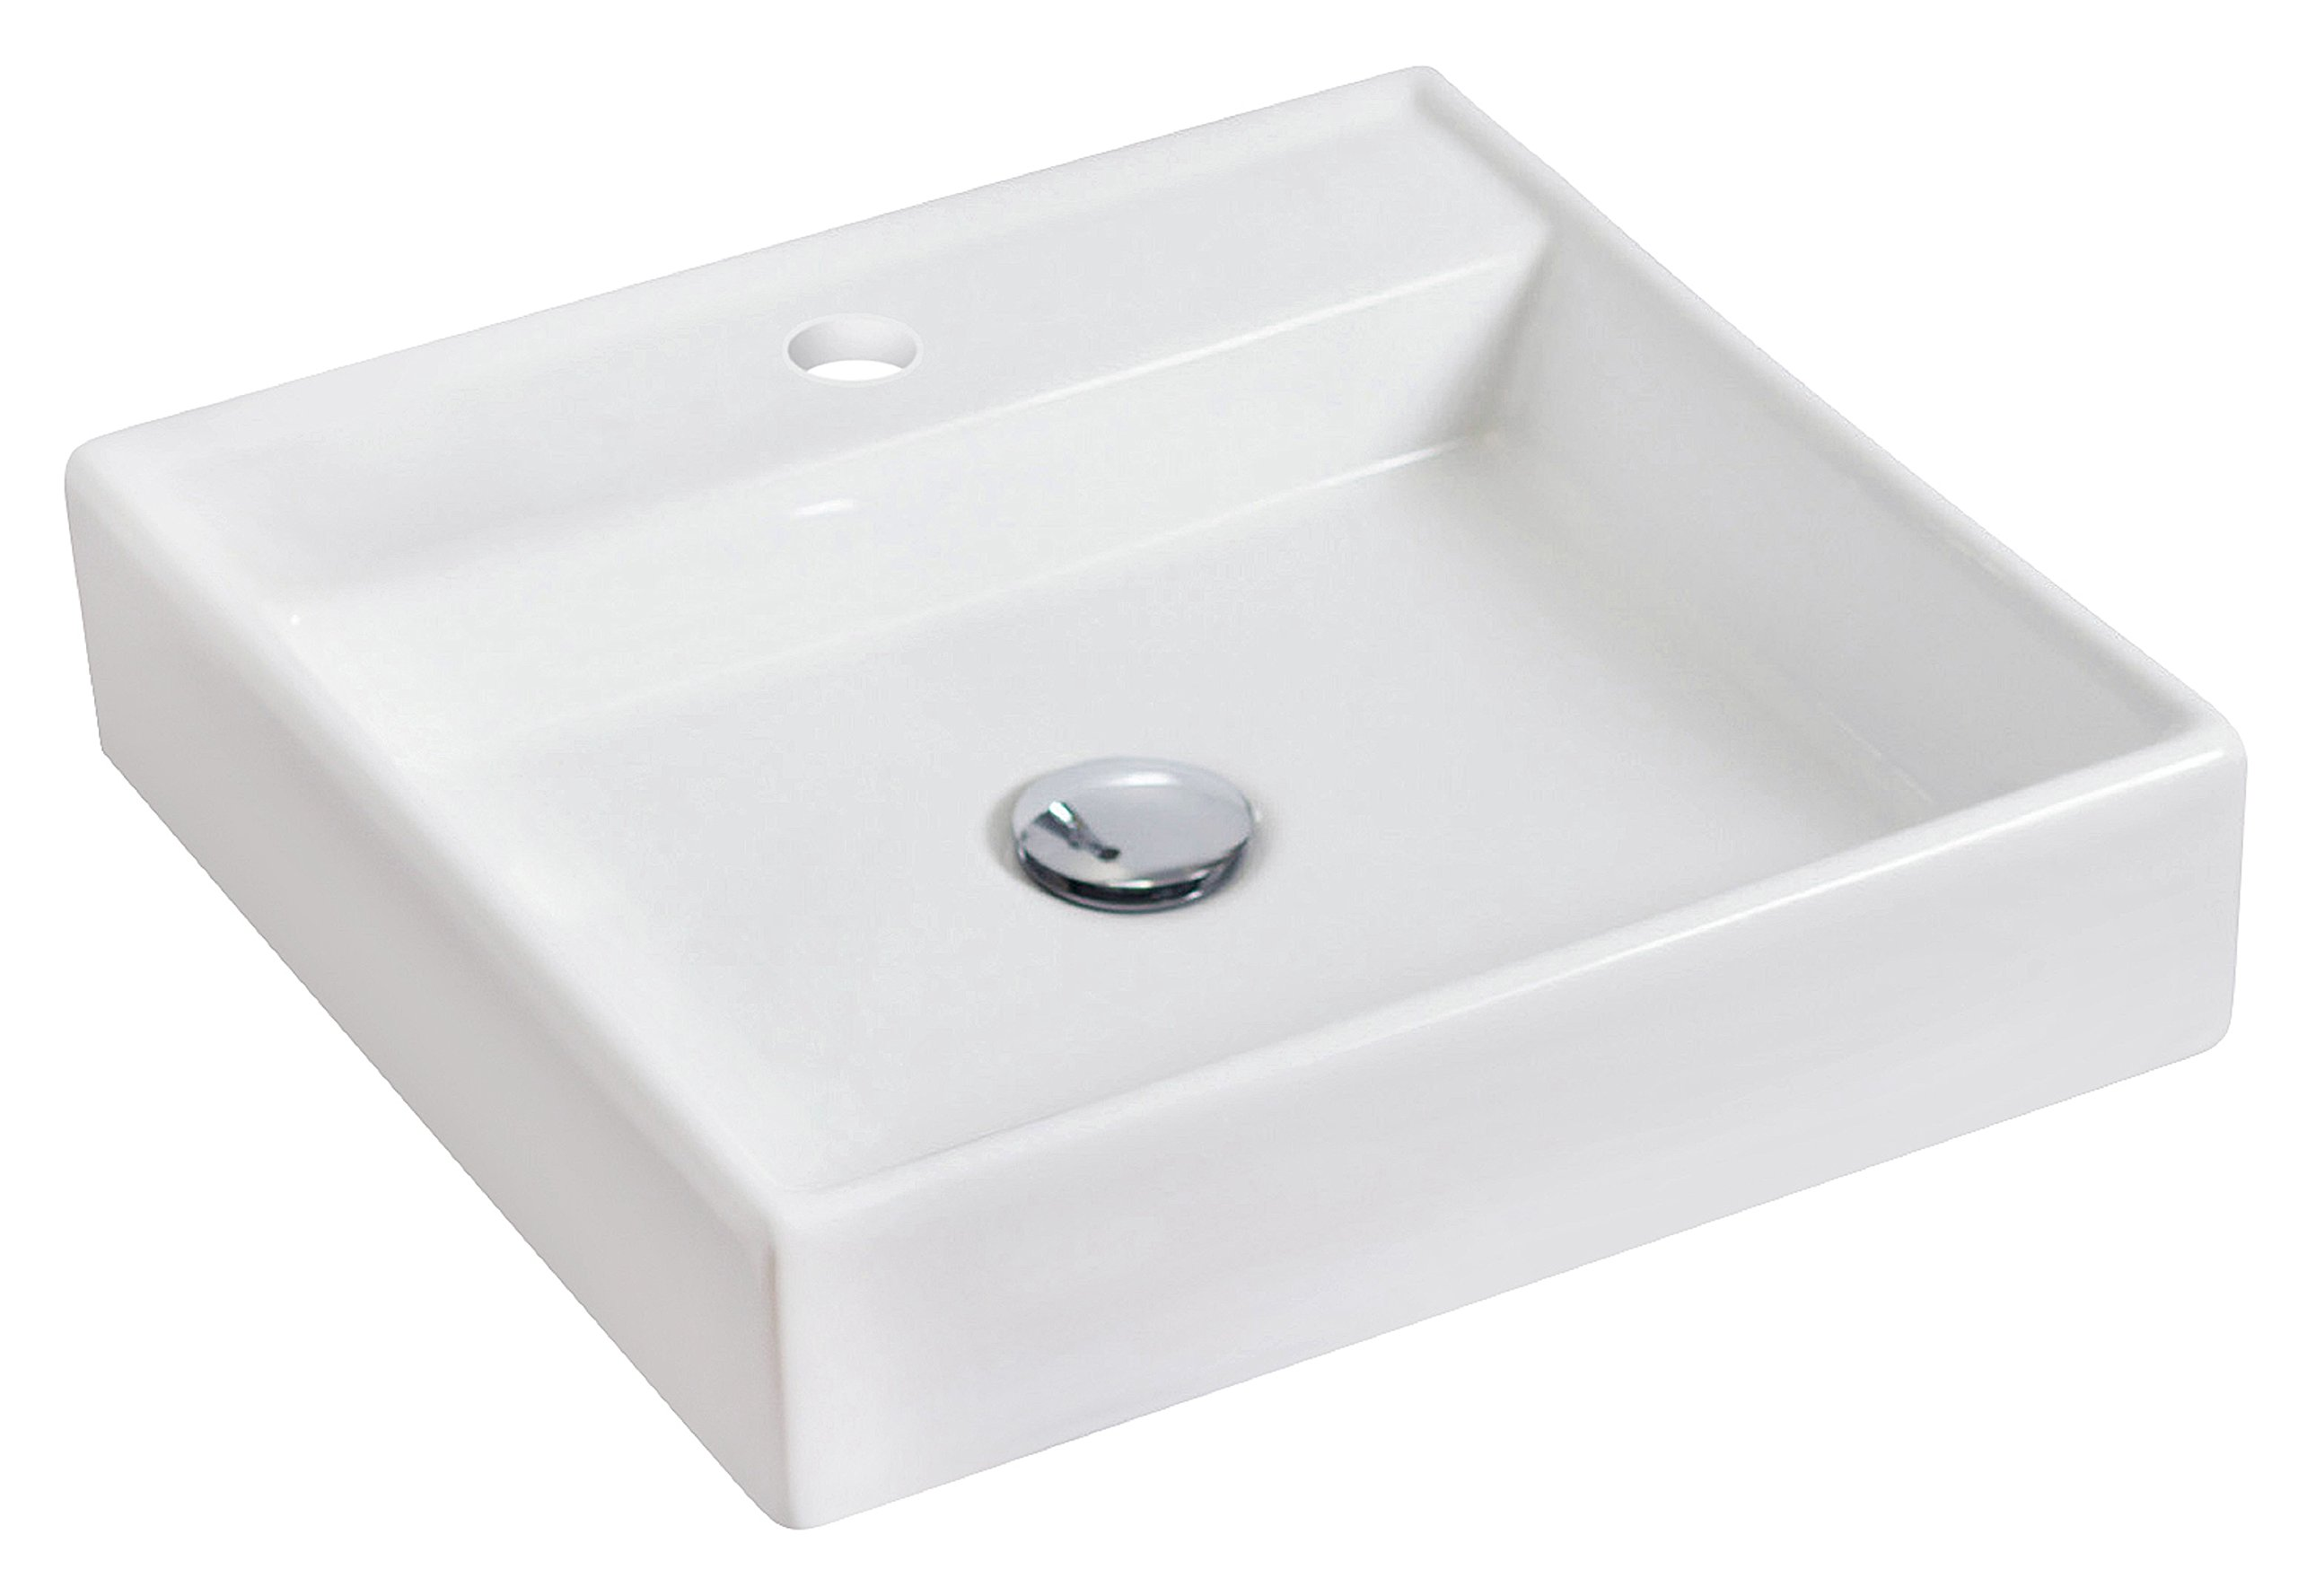 American Imaginations Square Shape Vessel, comes with an Enamel Glaze Finish in White Color and Designed for a Single Hole Faucet